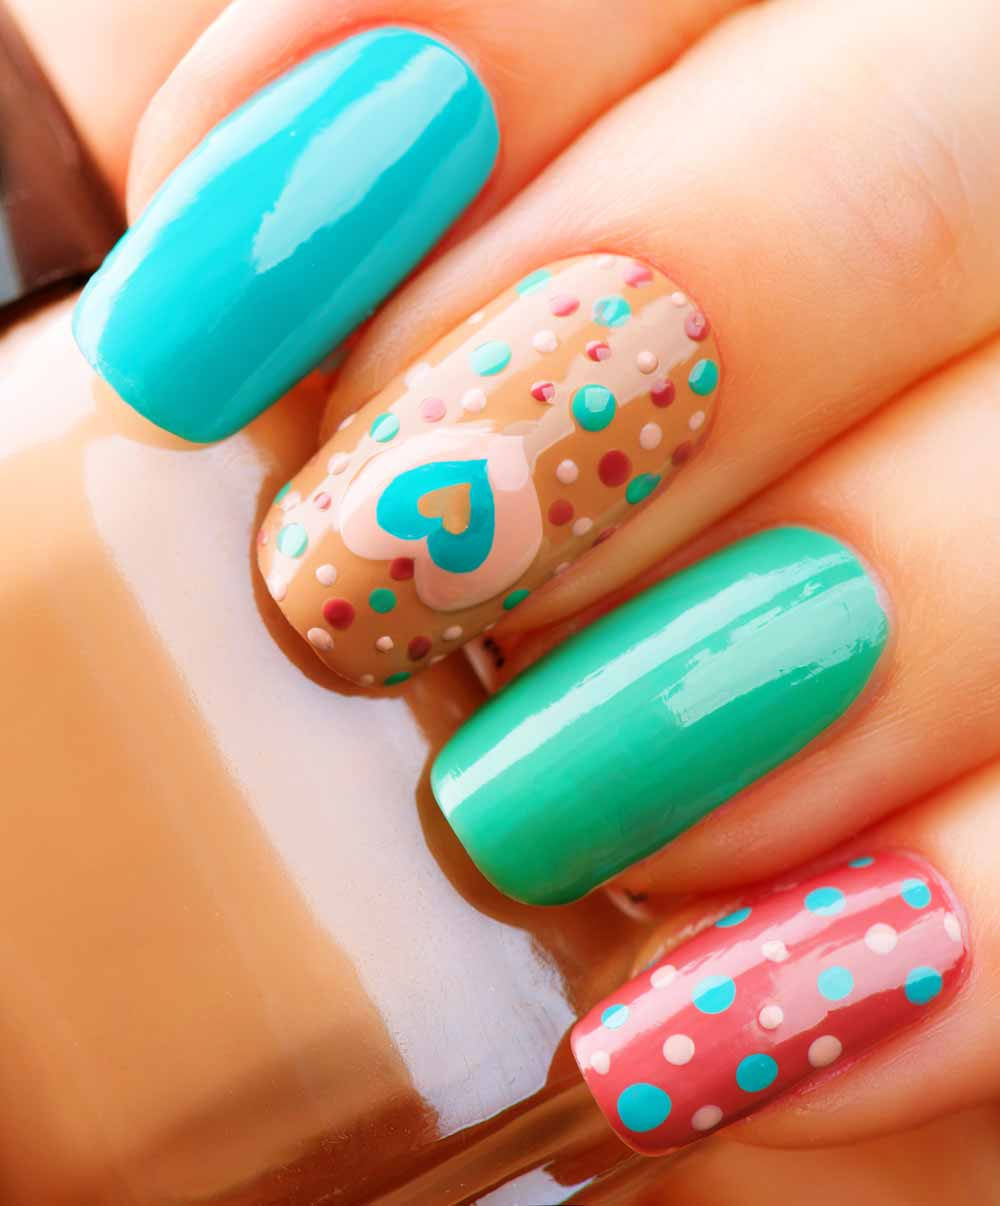 Nail Art Valentine 2018: 60 beautiful ideas